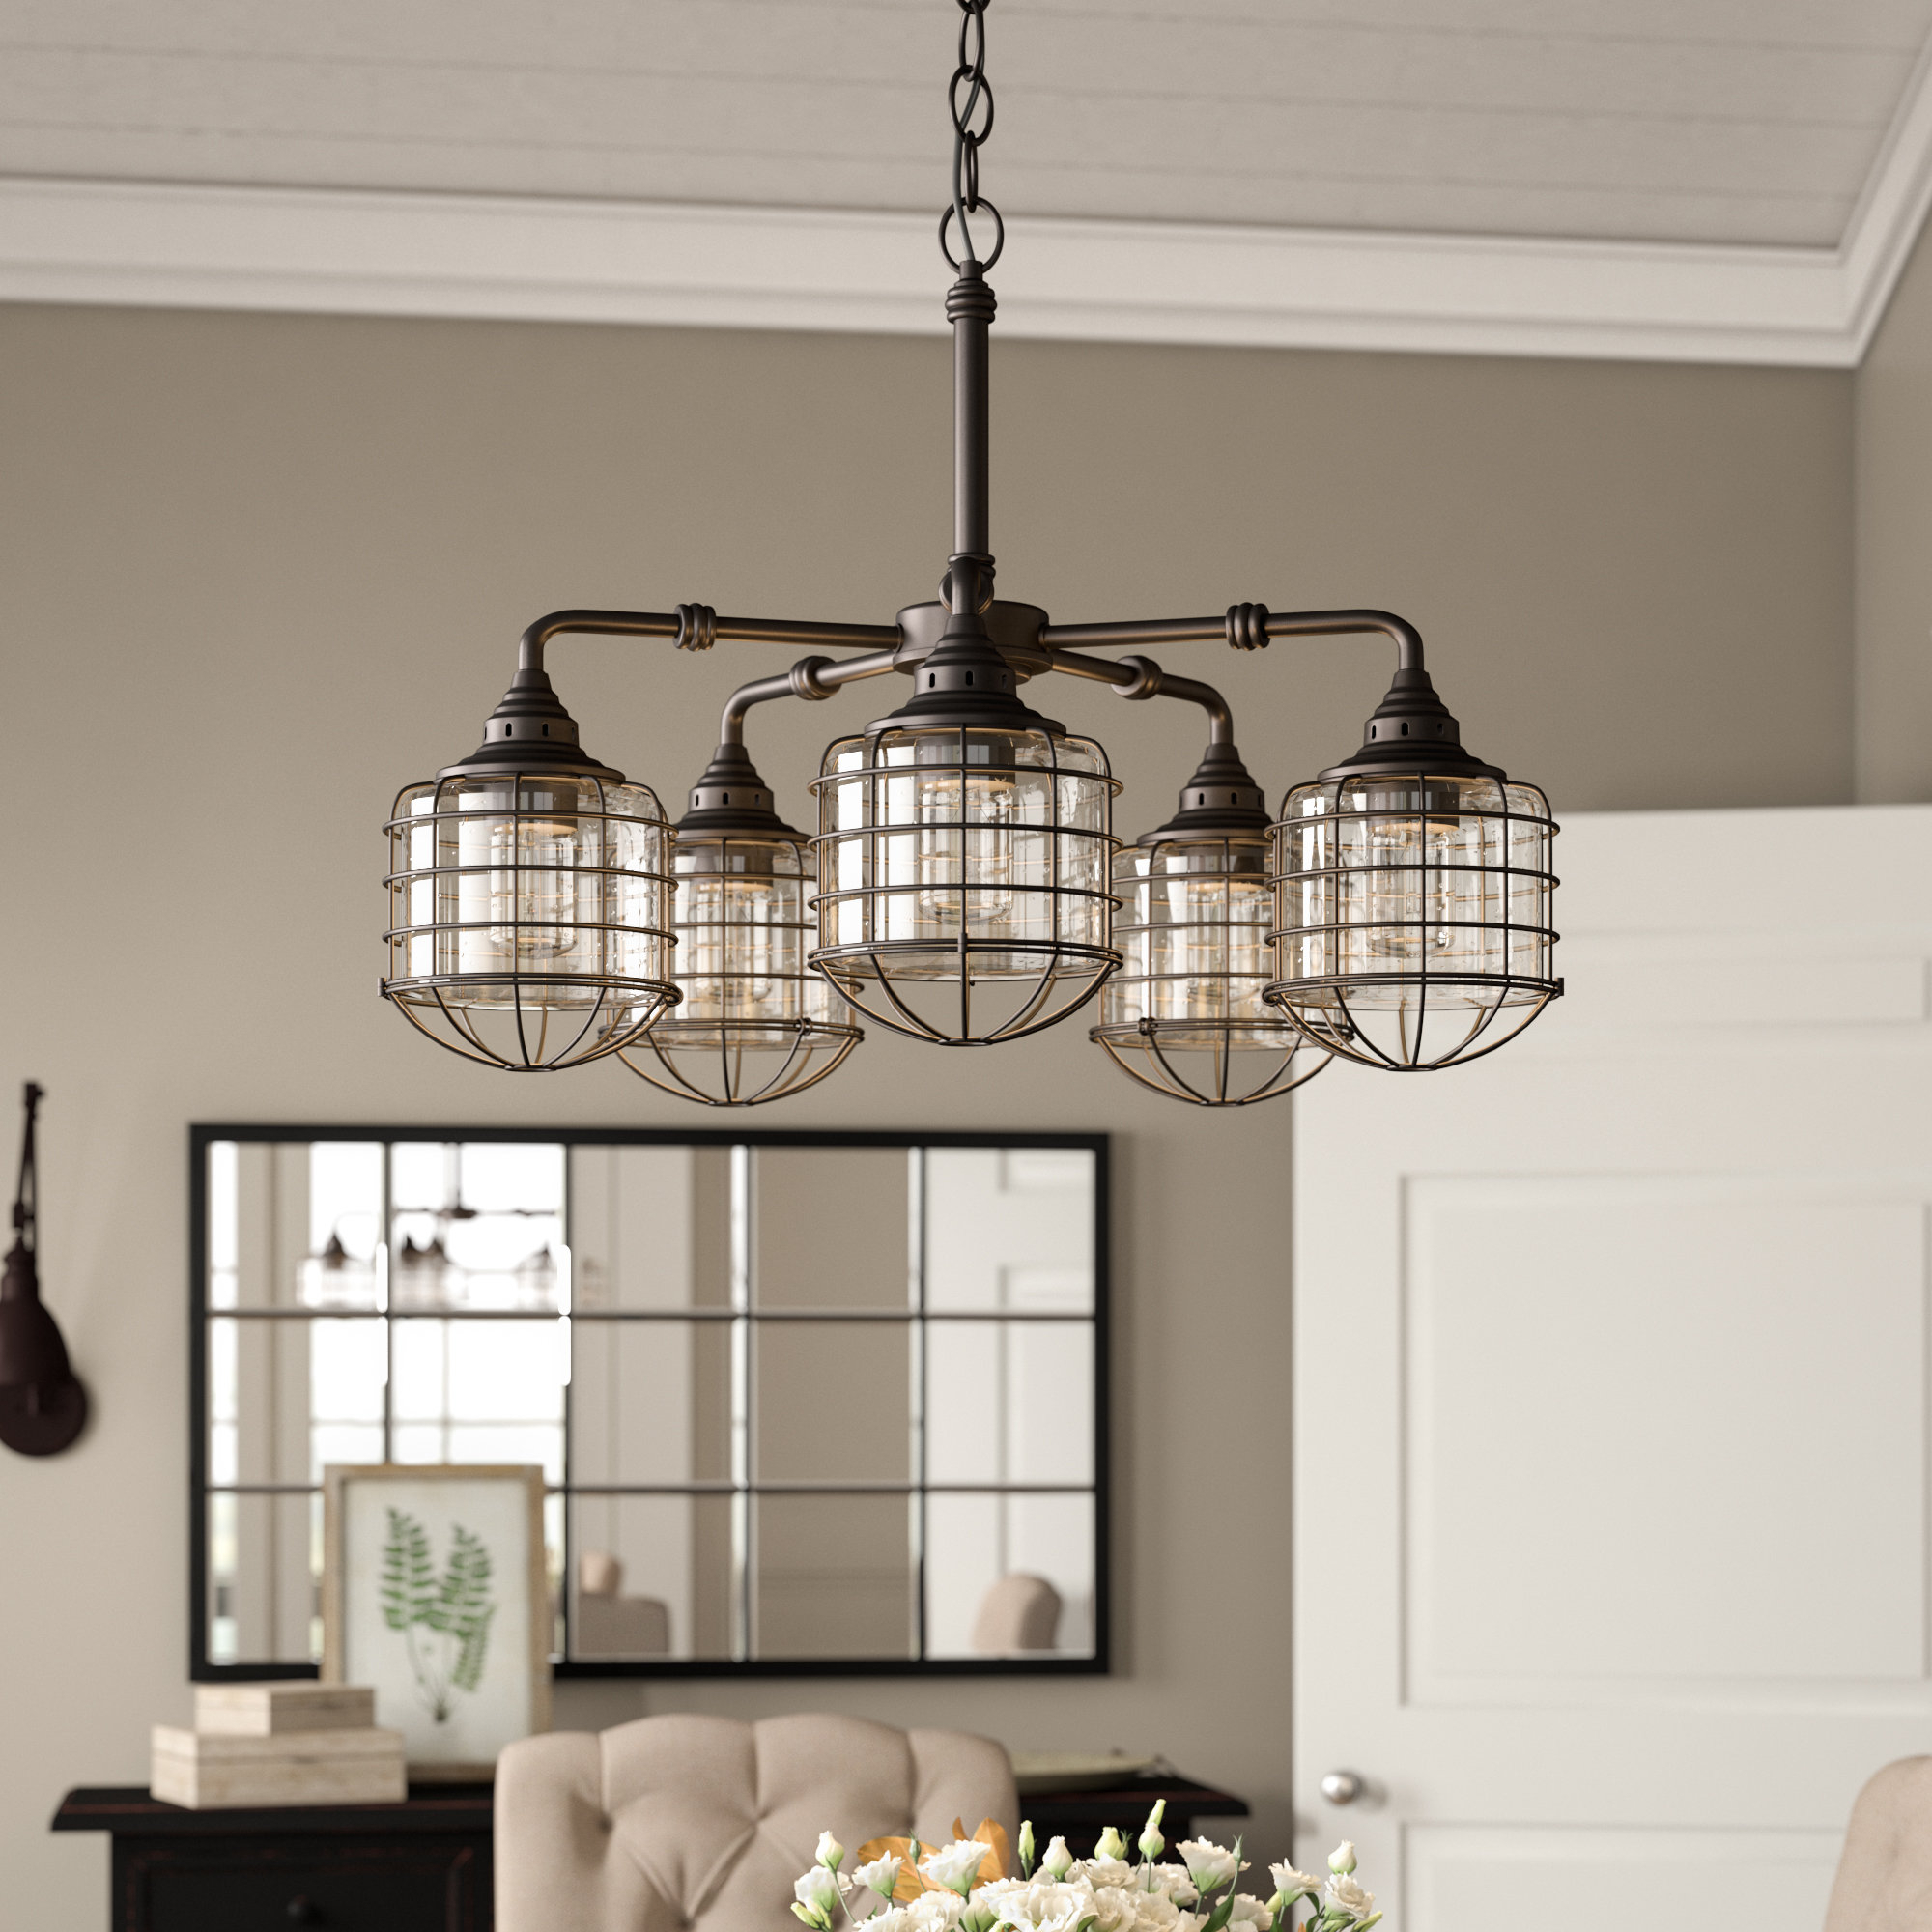 Roberts 5 Light Shaded Chandelier Throughout Gisselle 4 Light Drum Chandeliers (Gallery 30 of 30)